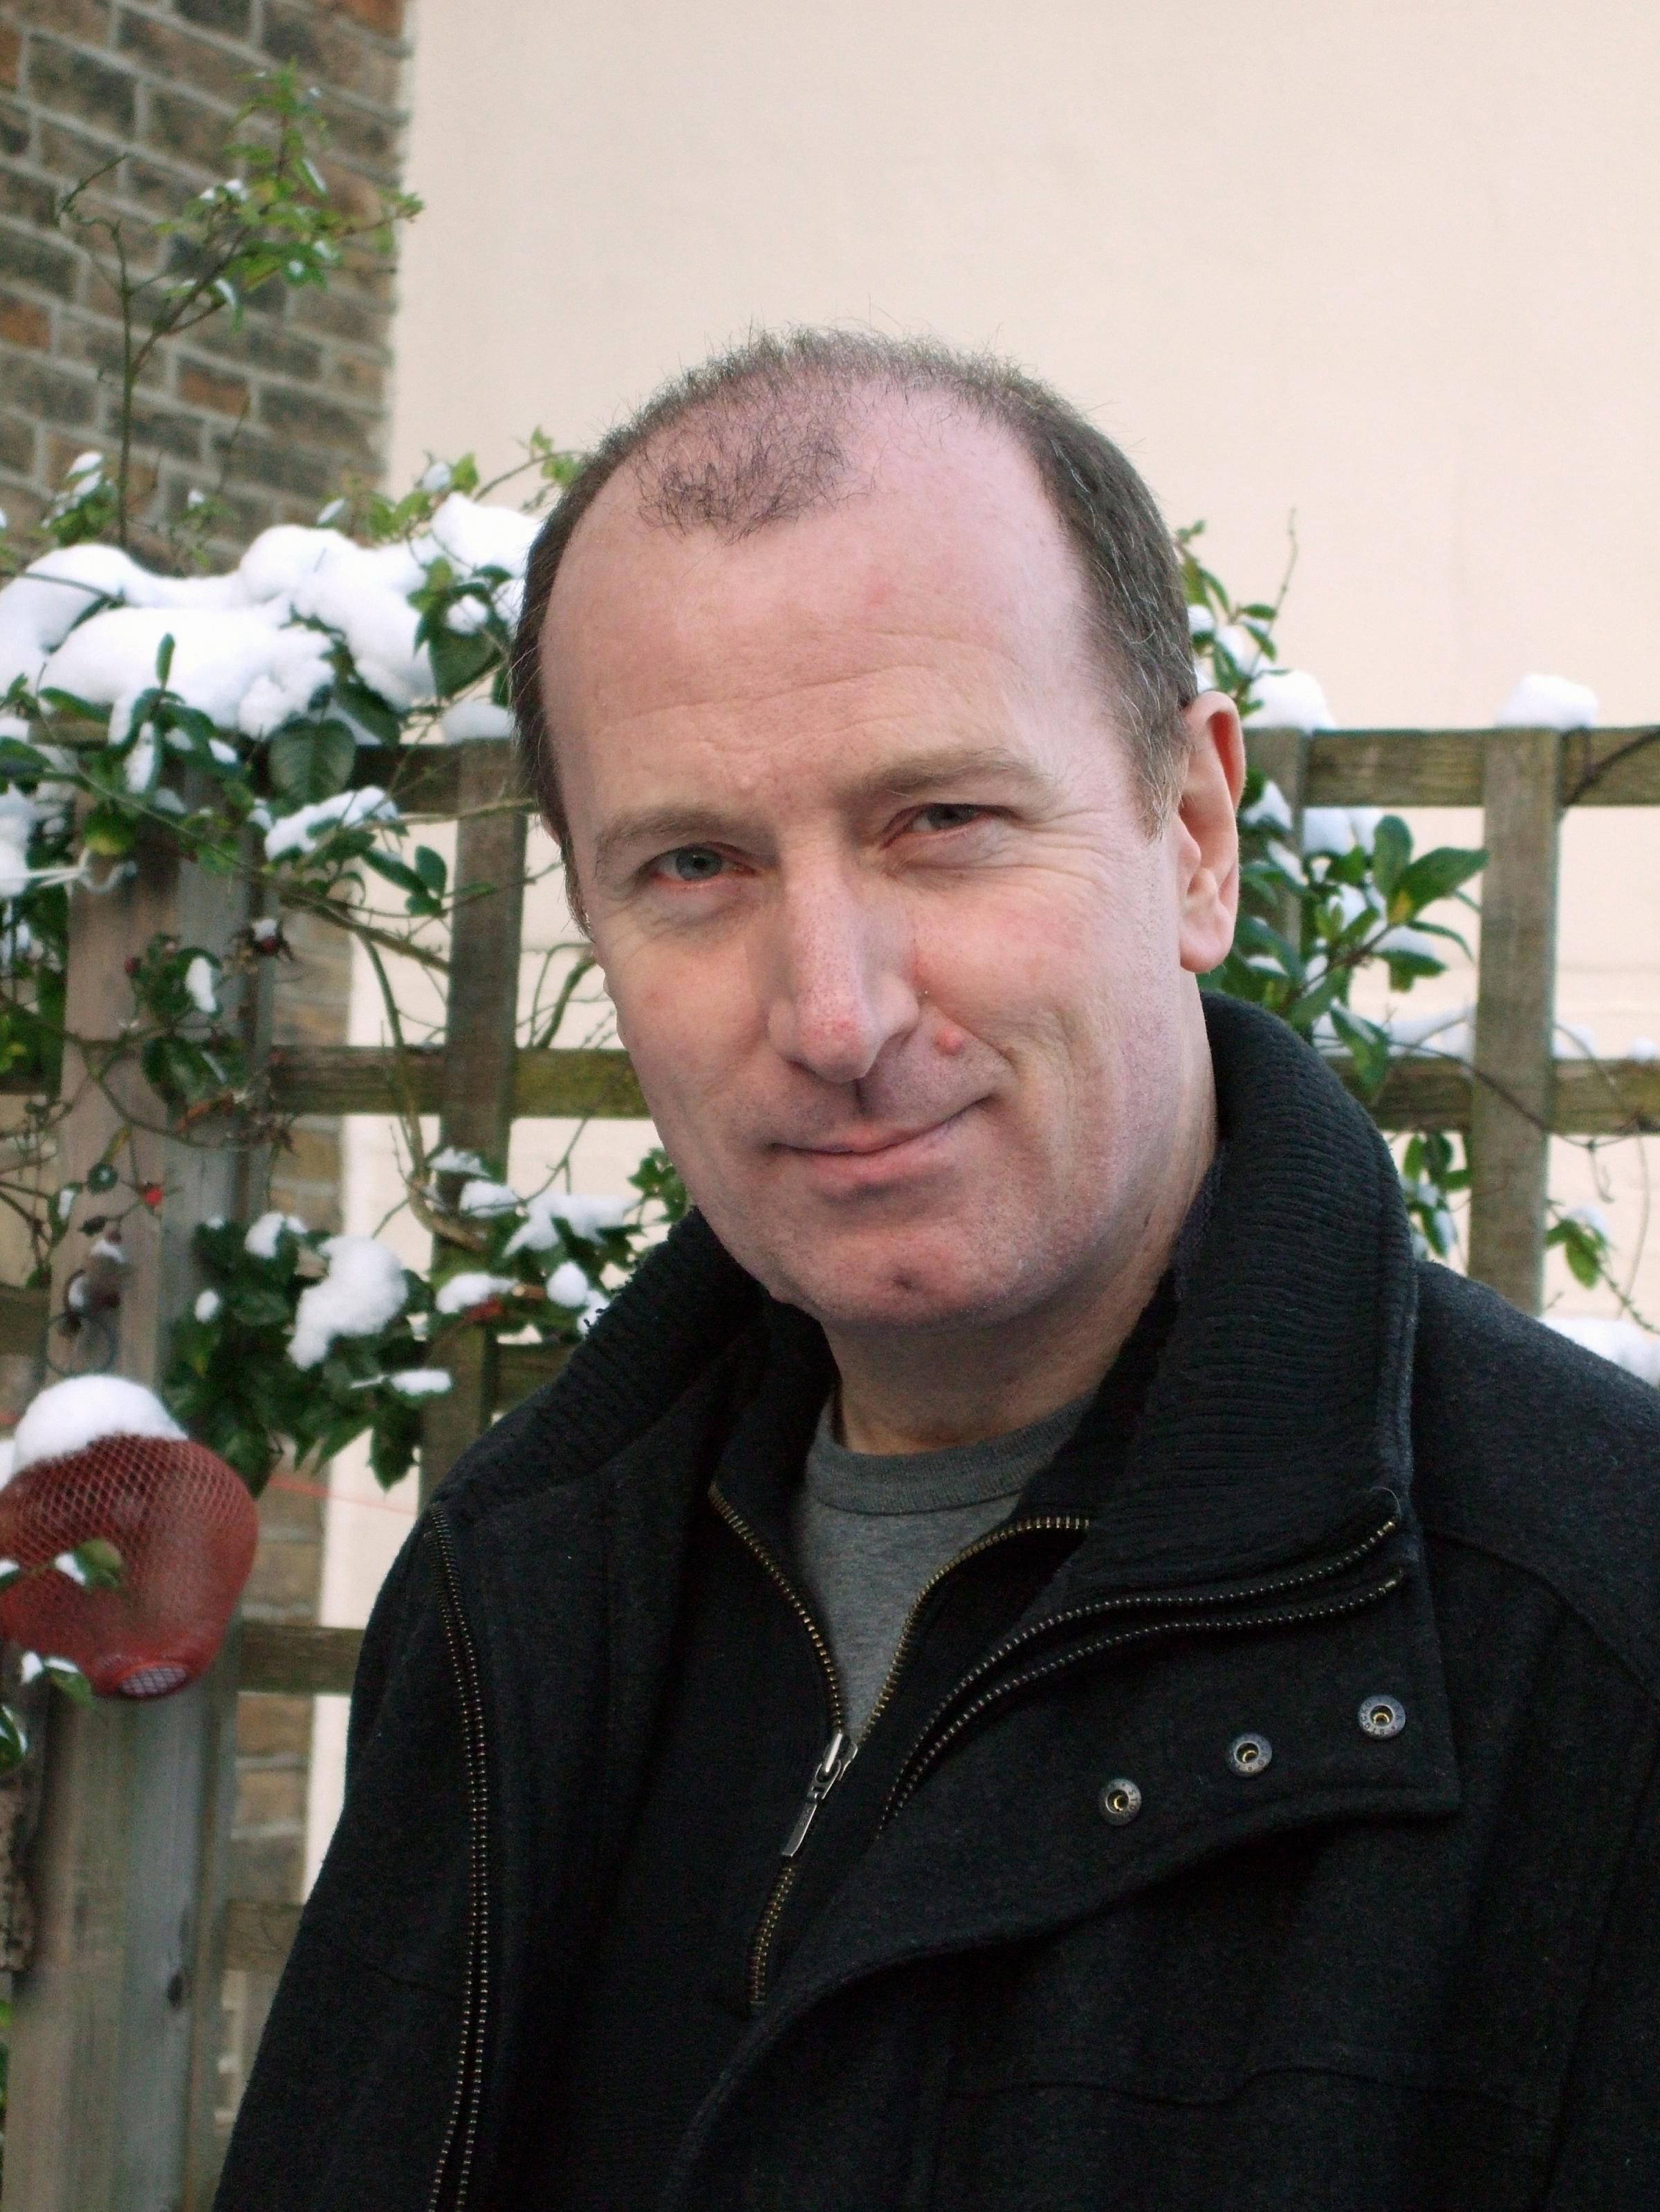 Ilkley author Martyn Bedford, who will be leading a creative writing workshop for youngsters as part of Otley Word Feast